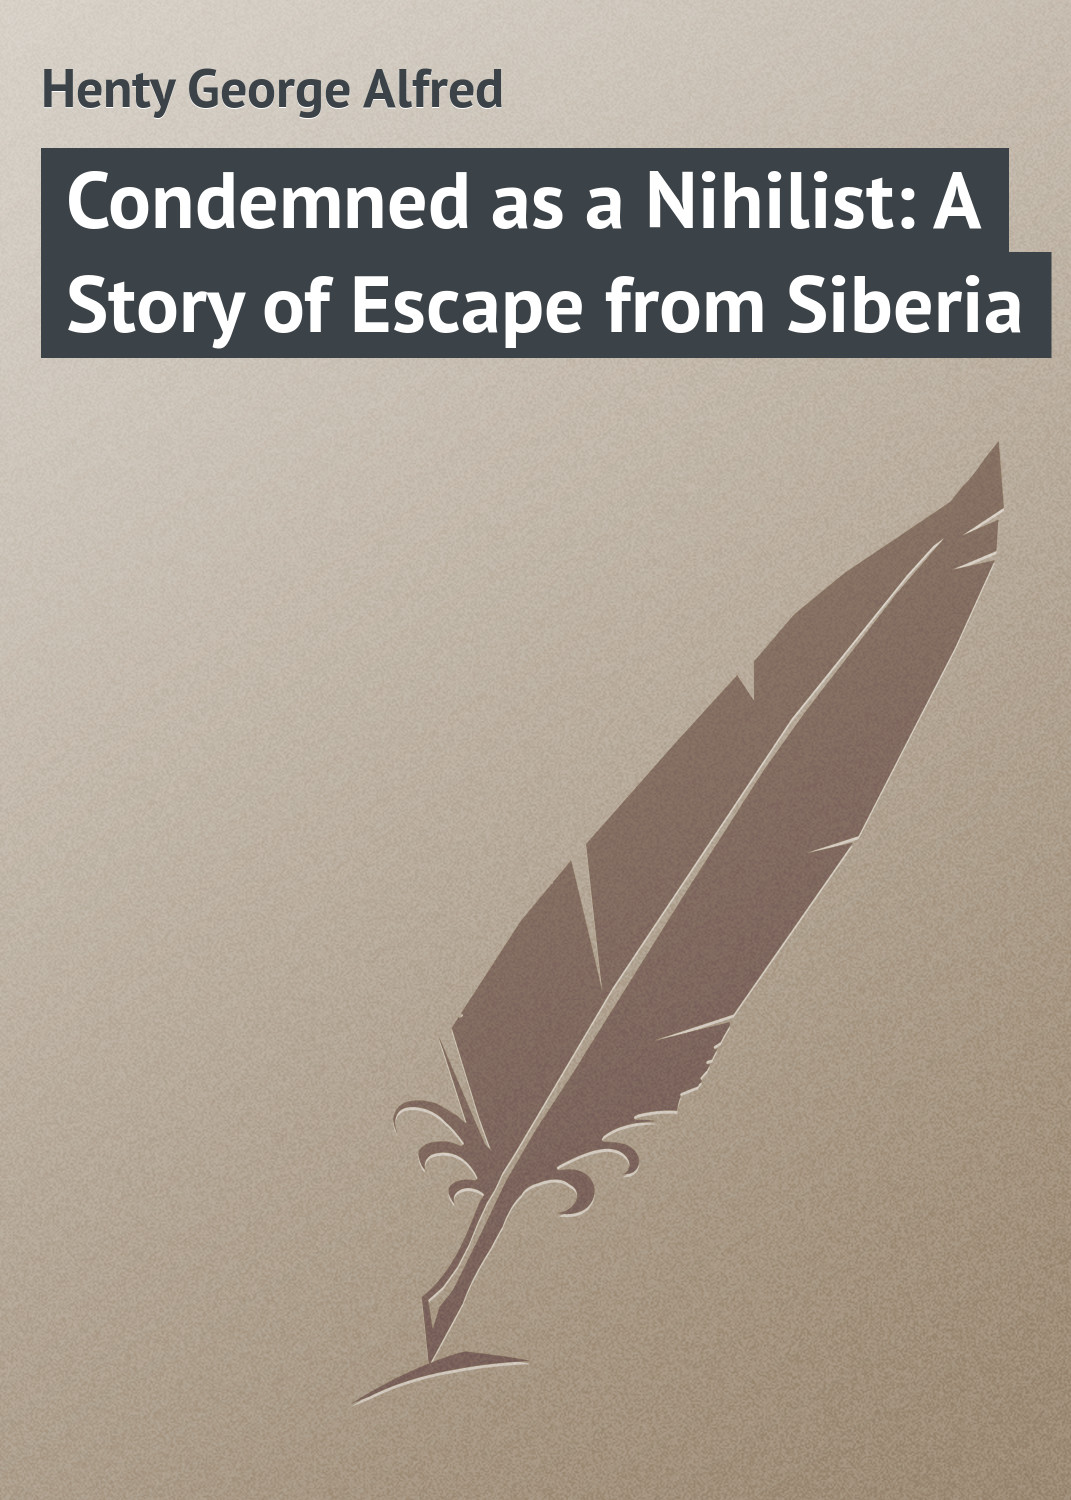 Henty George Alfred Condemned as a Nihilist: A Story of Escape from Siberia